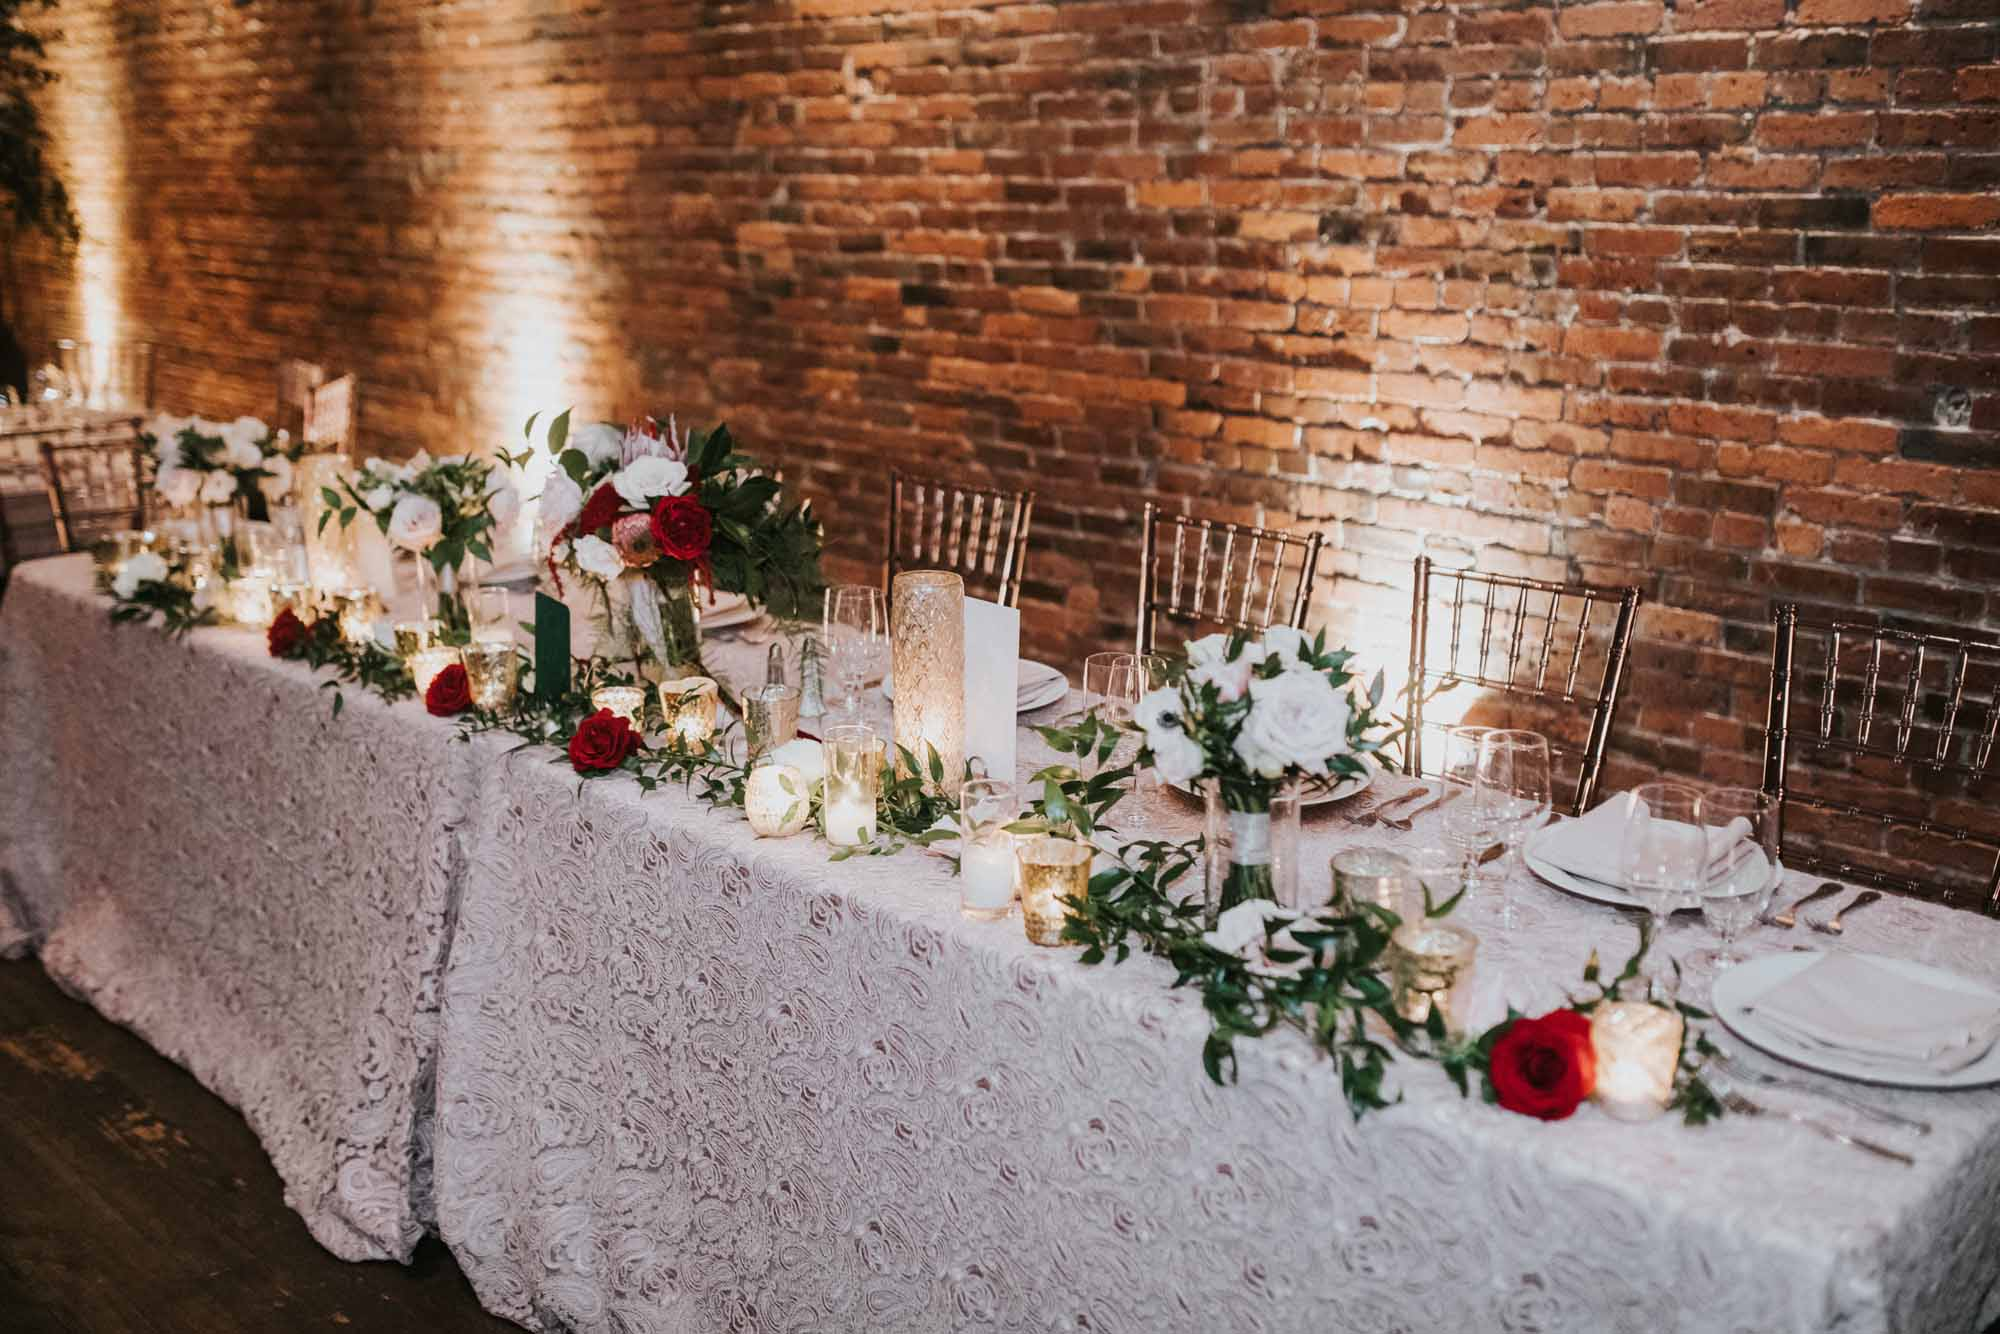 Head table with candles, flowers, and bouquets